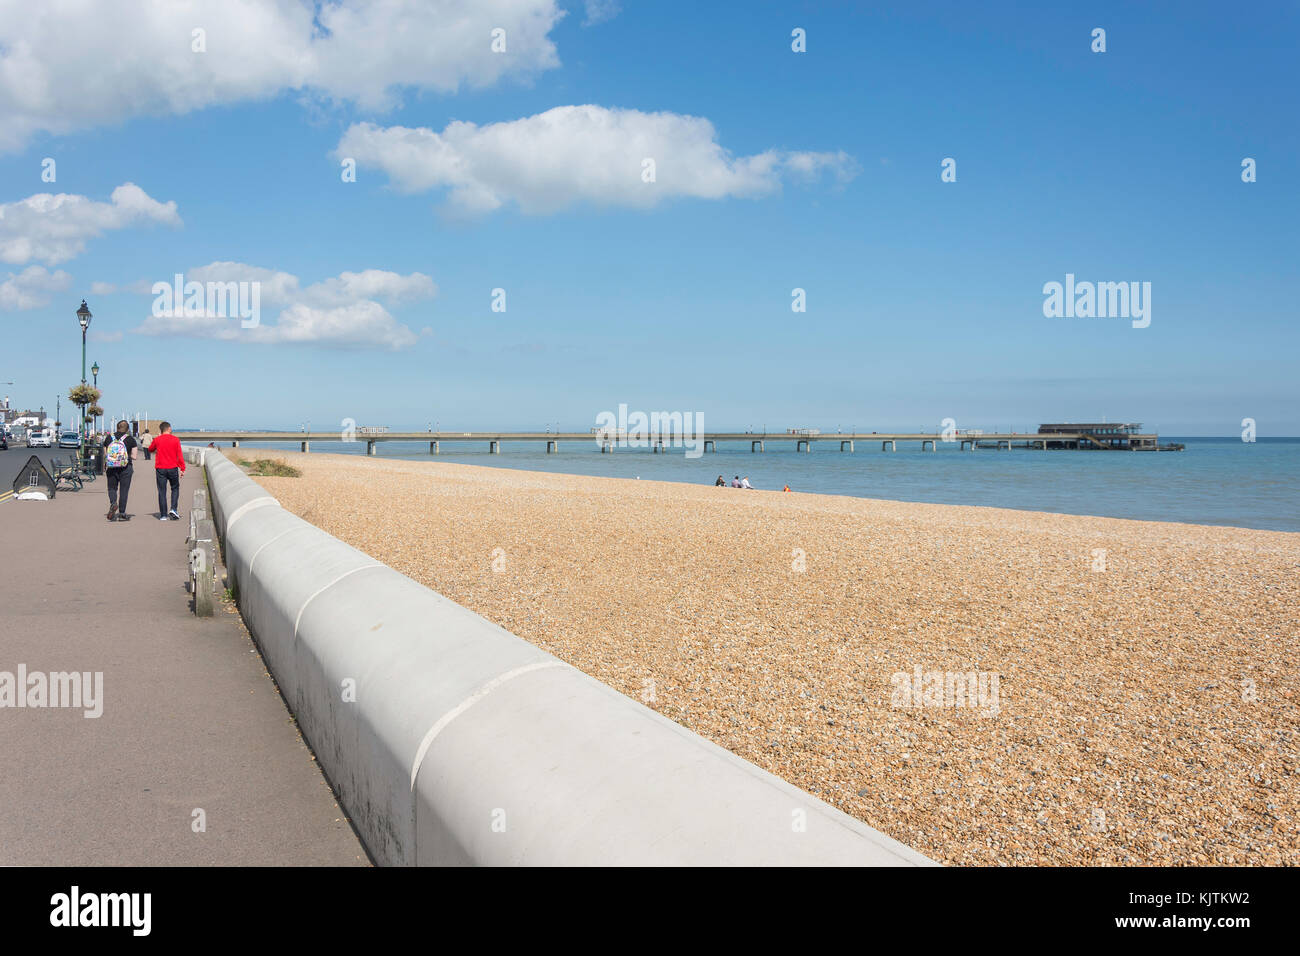 Beach and pier from promenade, Deal, Kent, England, United Kingdom - Stock Image